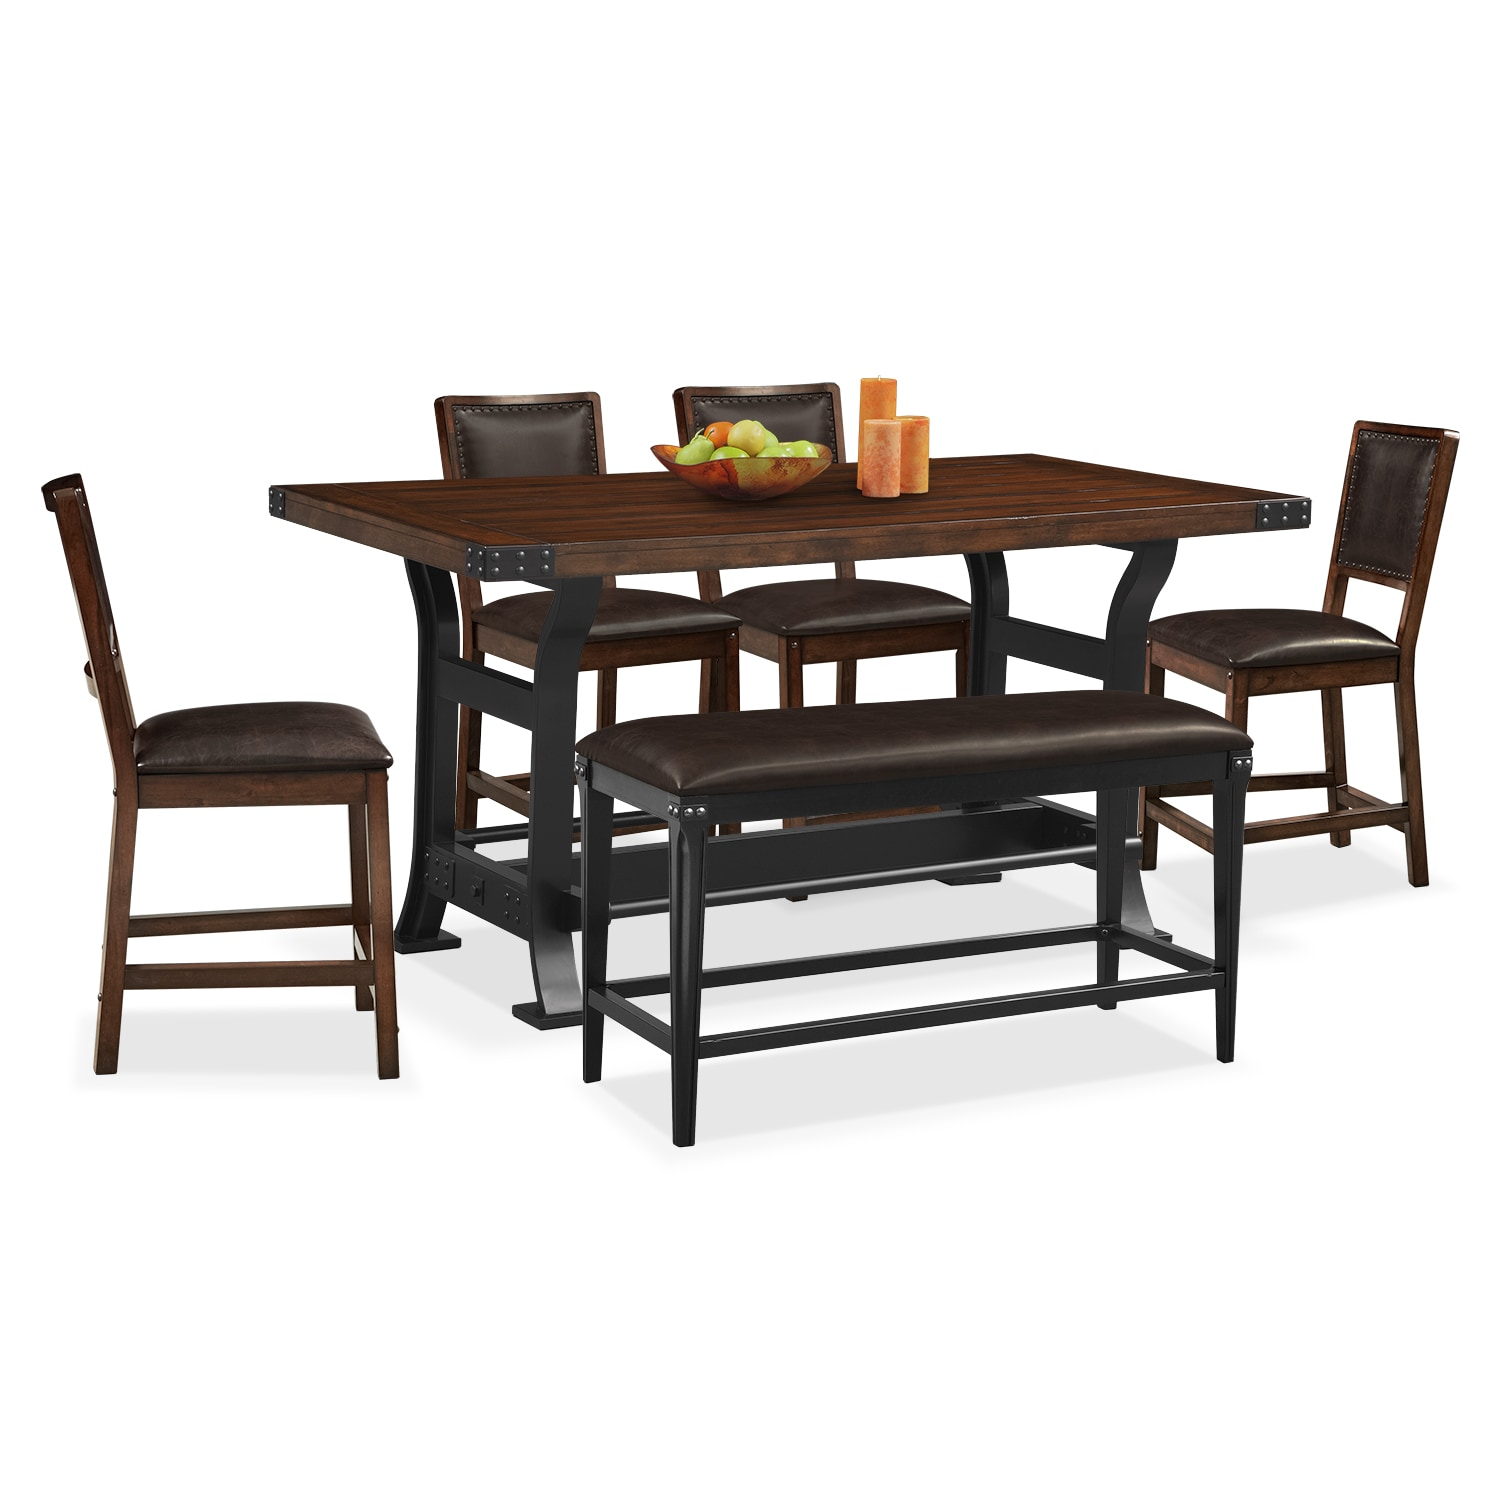 Newcastle counter height table chairs and bench